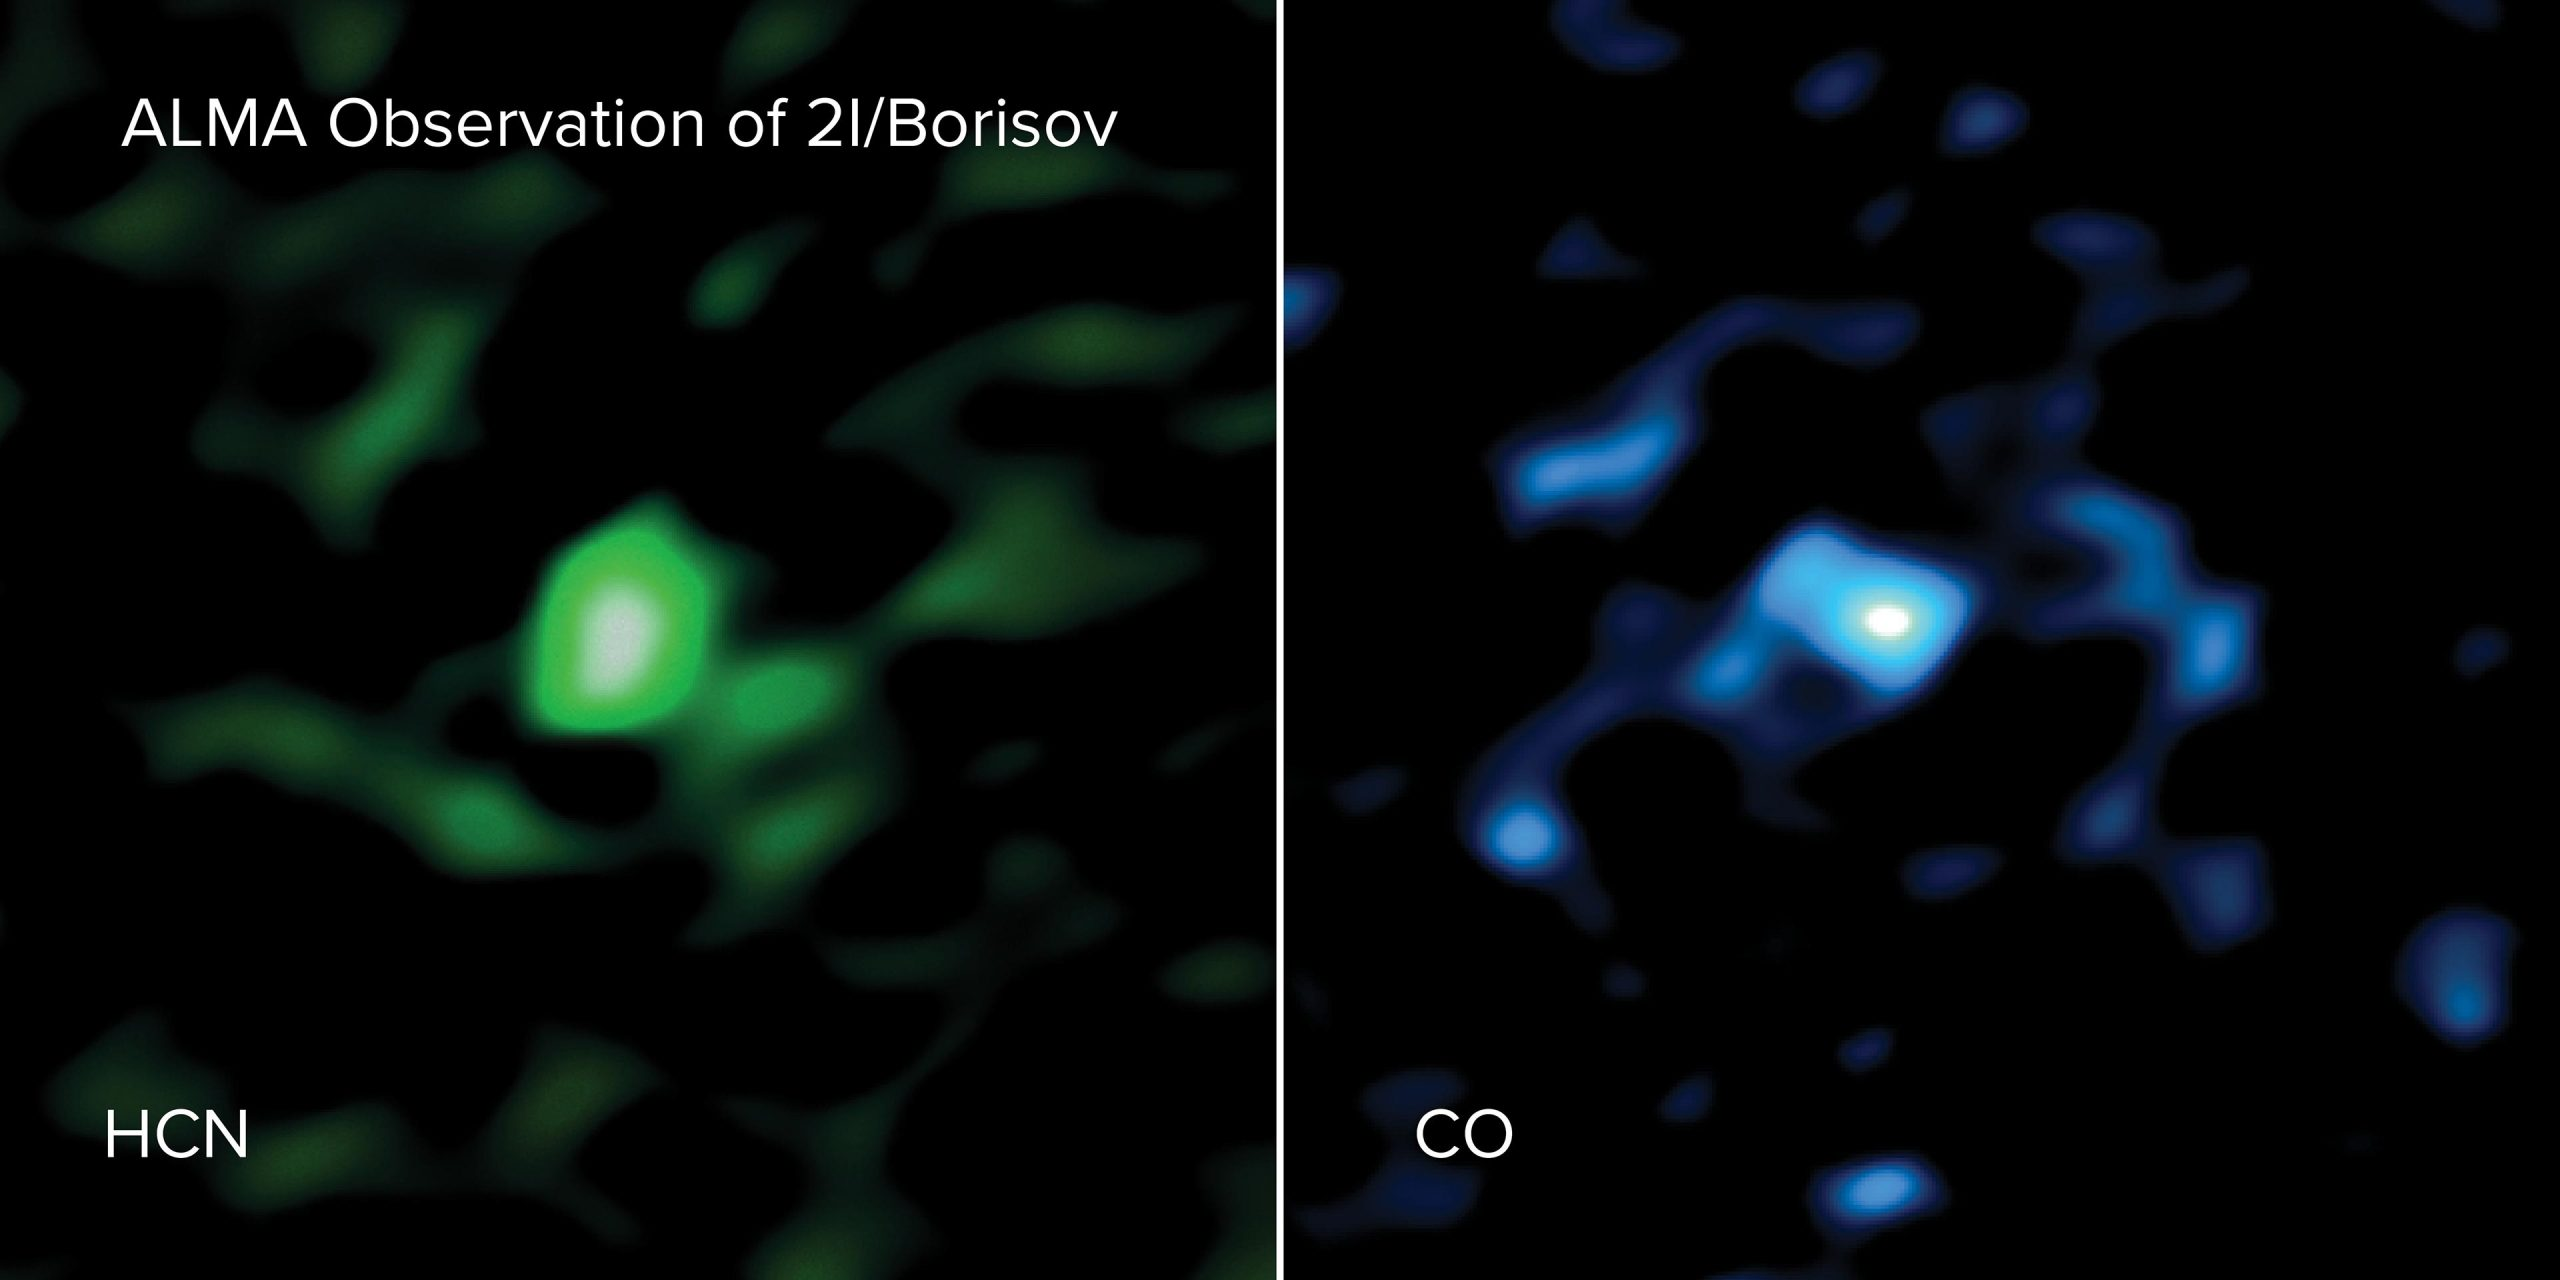 New research shows interstellar visitor 21/Borisov is not your average comet